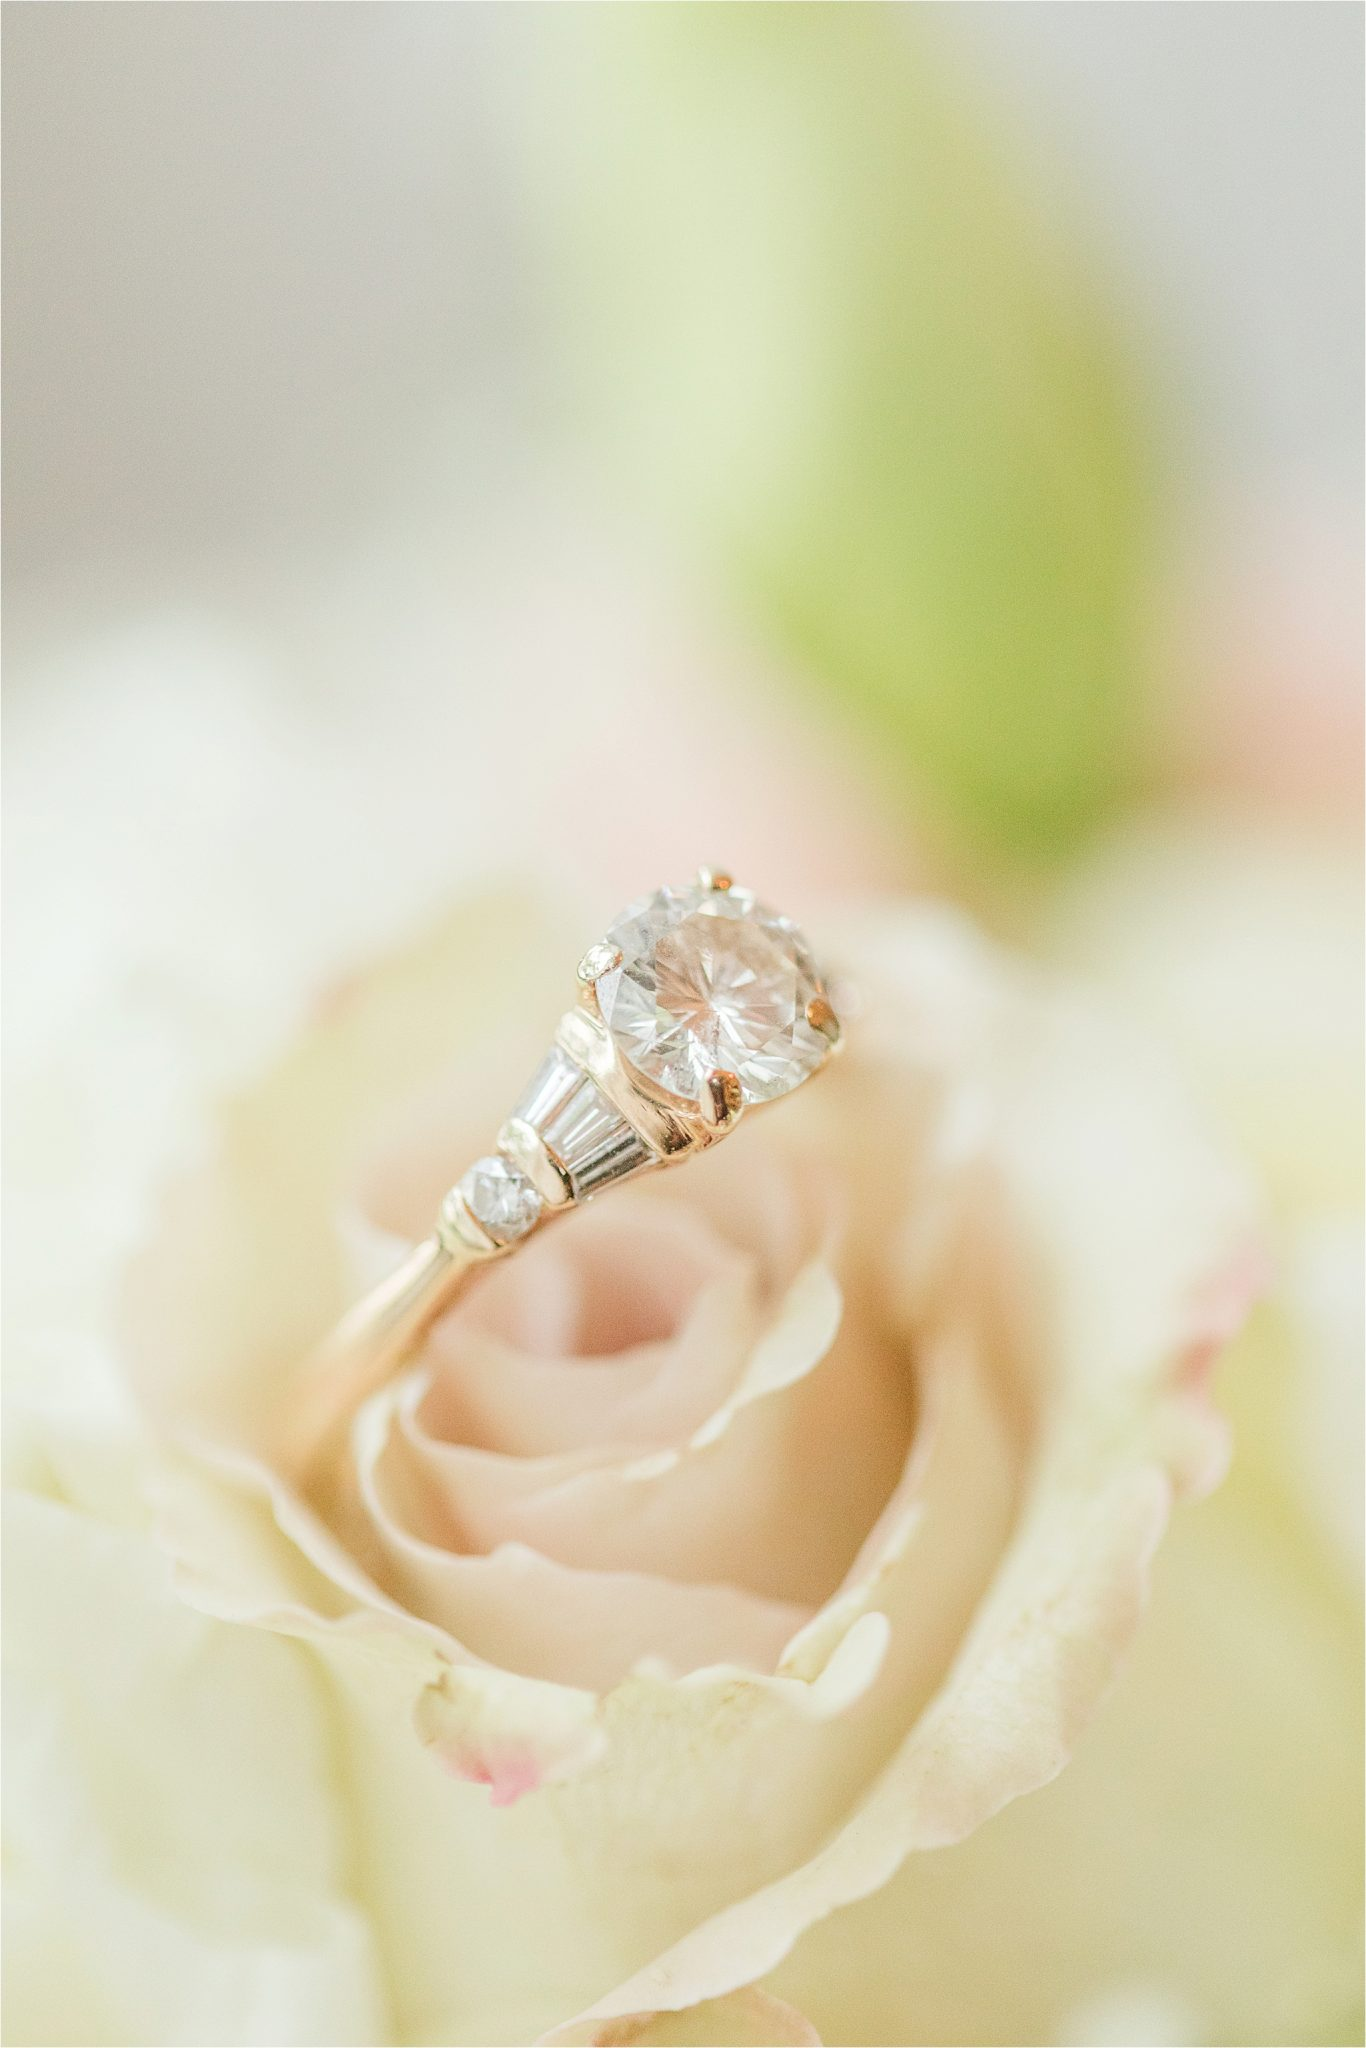 Yellow gold engagement rings-round cut-simple-straps and diamonds on sides-four prong